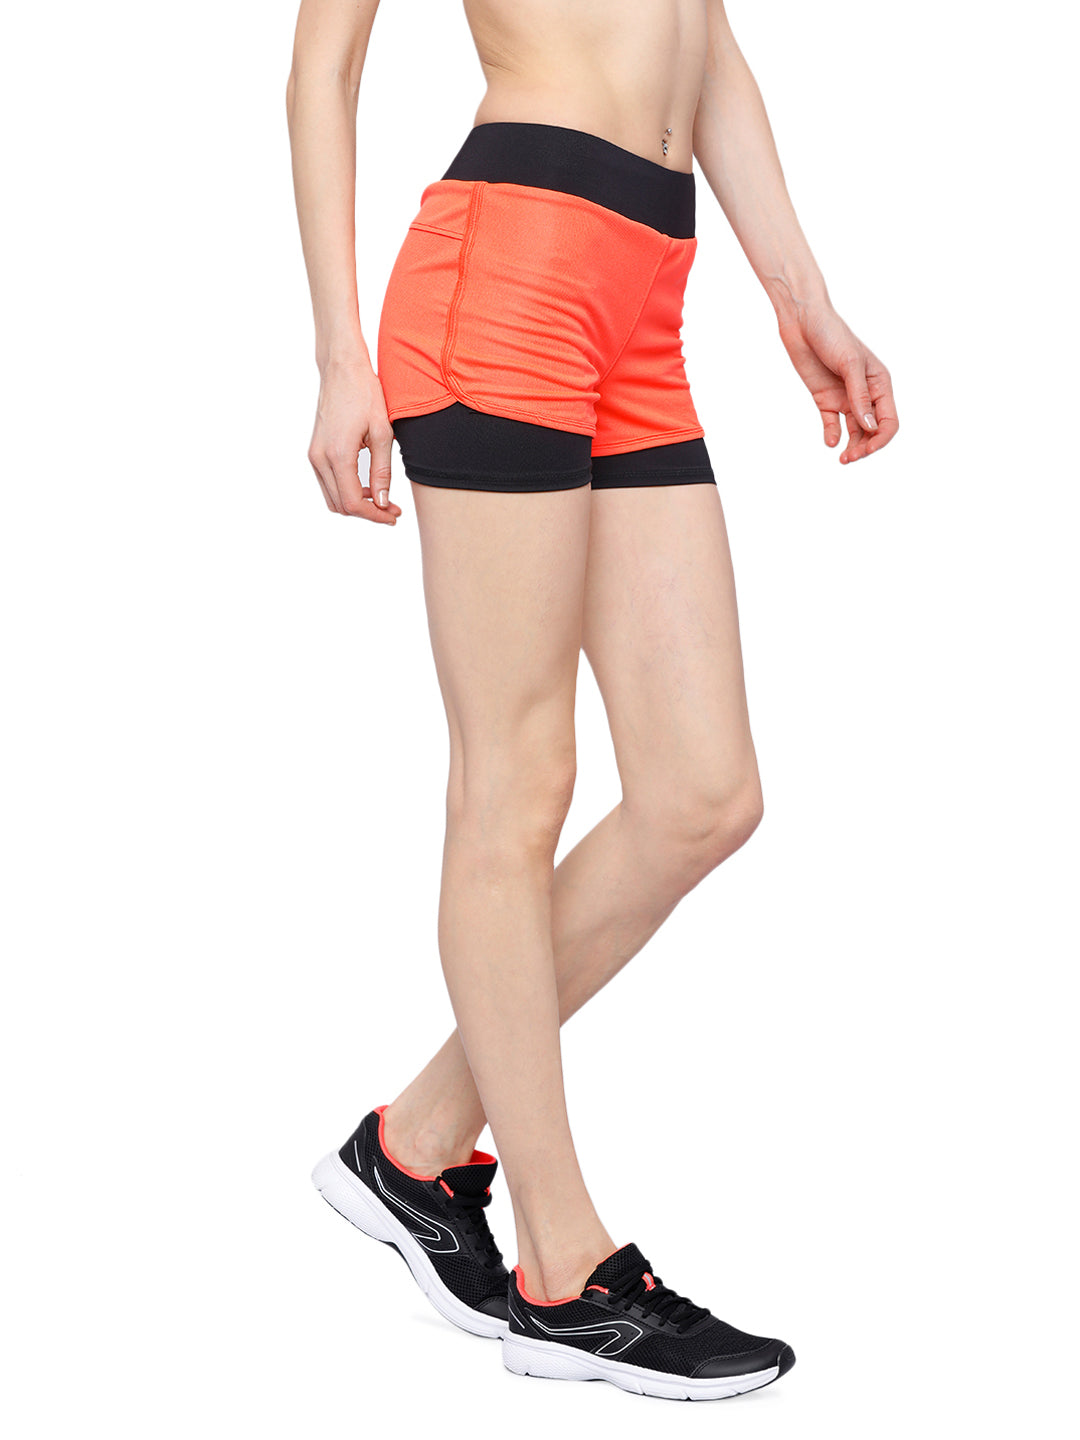 Piranha Women's Orange Running Shorts - RS94